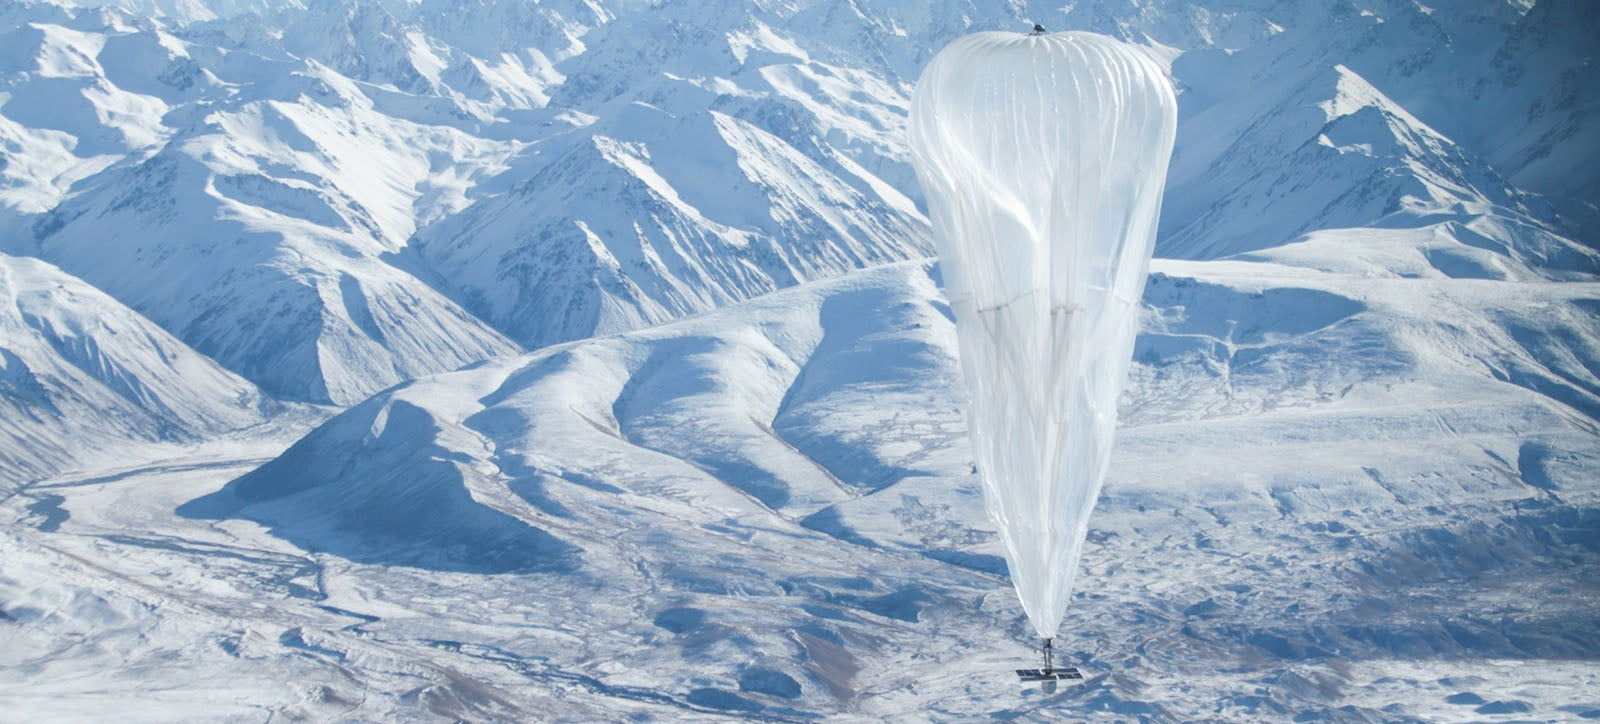 New Zealand Just Mistook Google's Project Loon for a Crashing Aeroplane